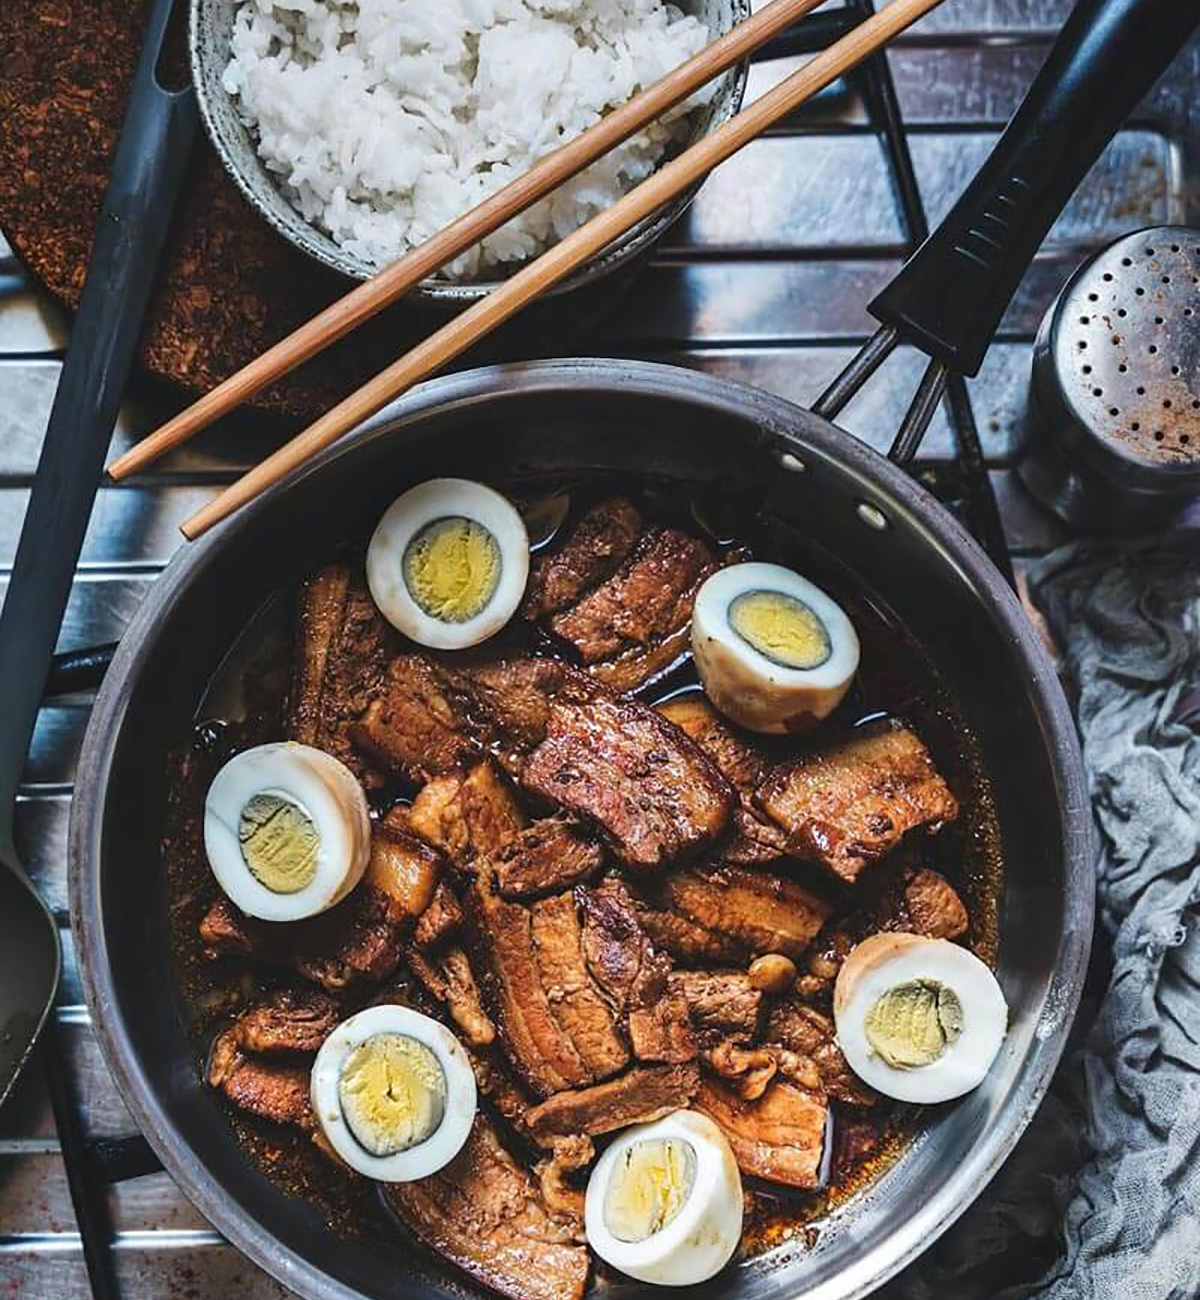 Filipinos have a passion for cooking and eating